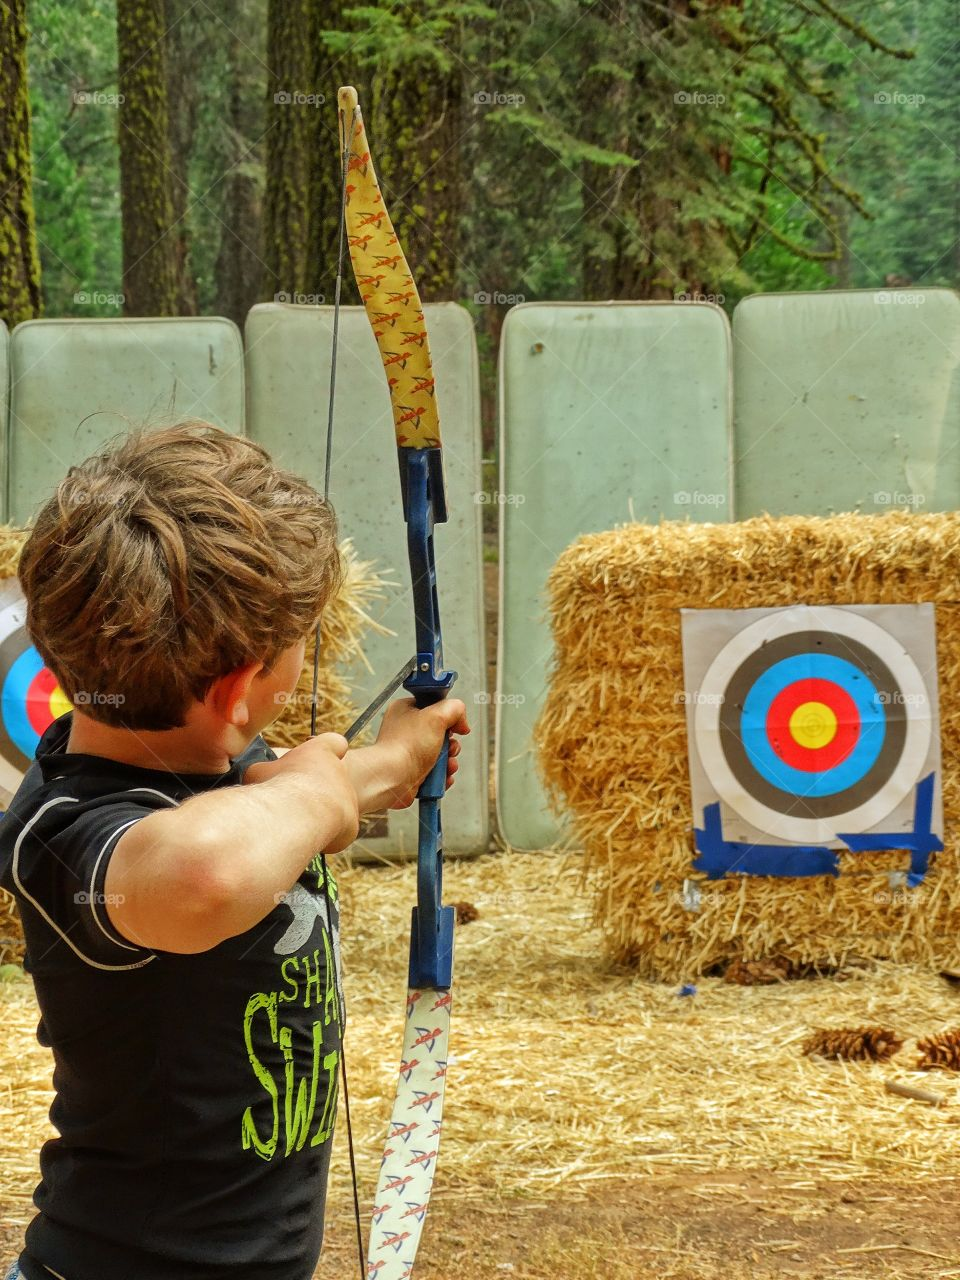 Boy Shooting Arrows. Target Practice At The Archery Range